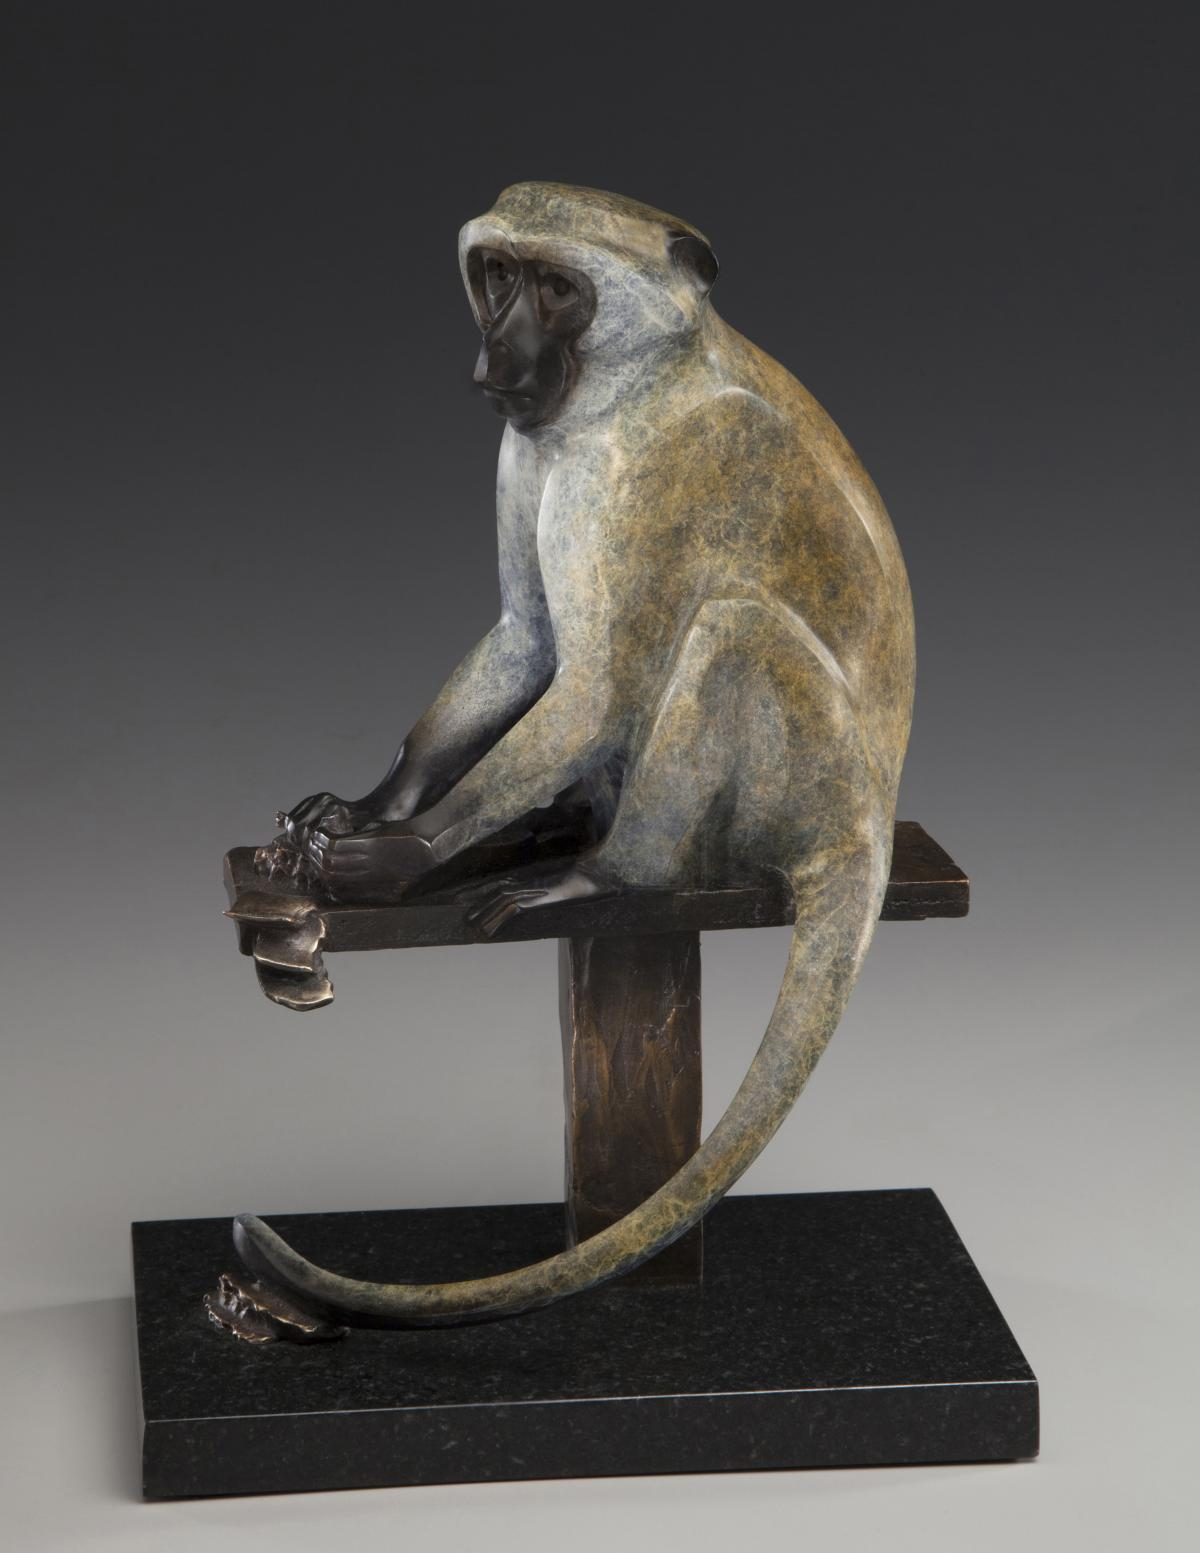 | Sculpture by Rosetta | Artists for Conservation